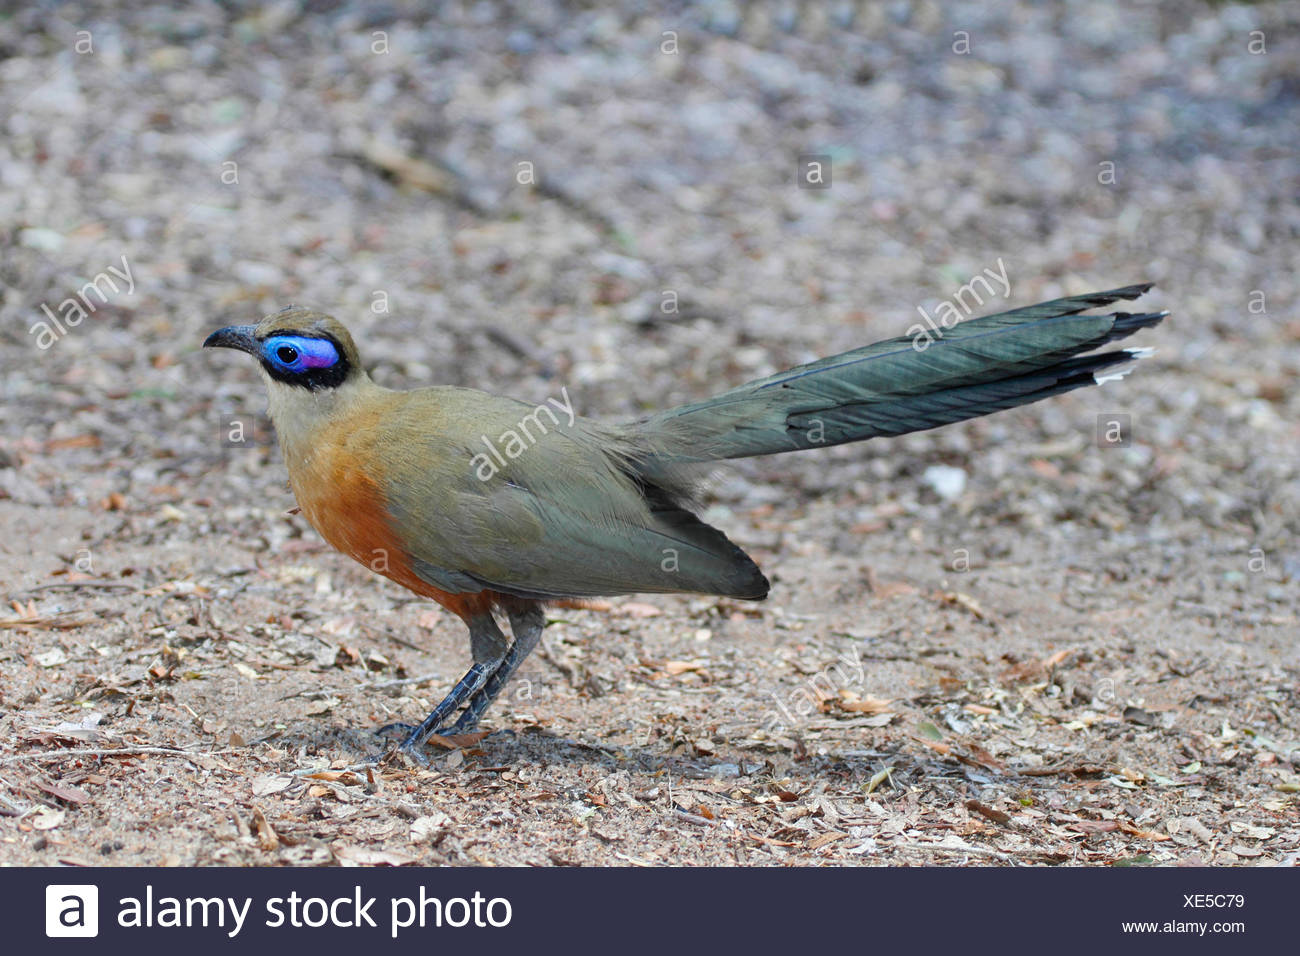 Giant Madagascar coucal, Giant coua (Coua gigas), stands on the ground, Madagascar, Zombitse-Vohibasia National Park - Stock Image